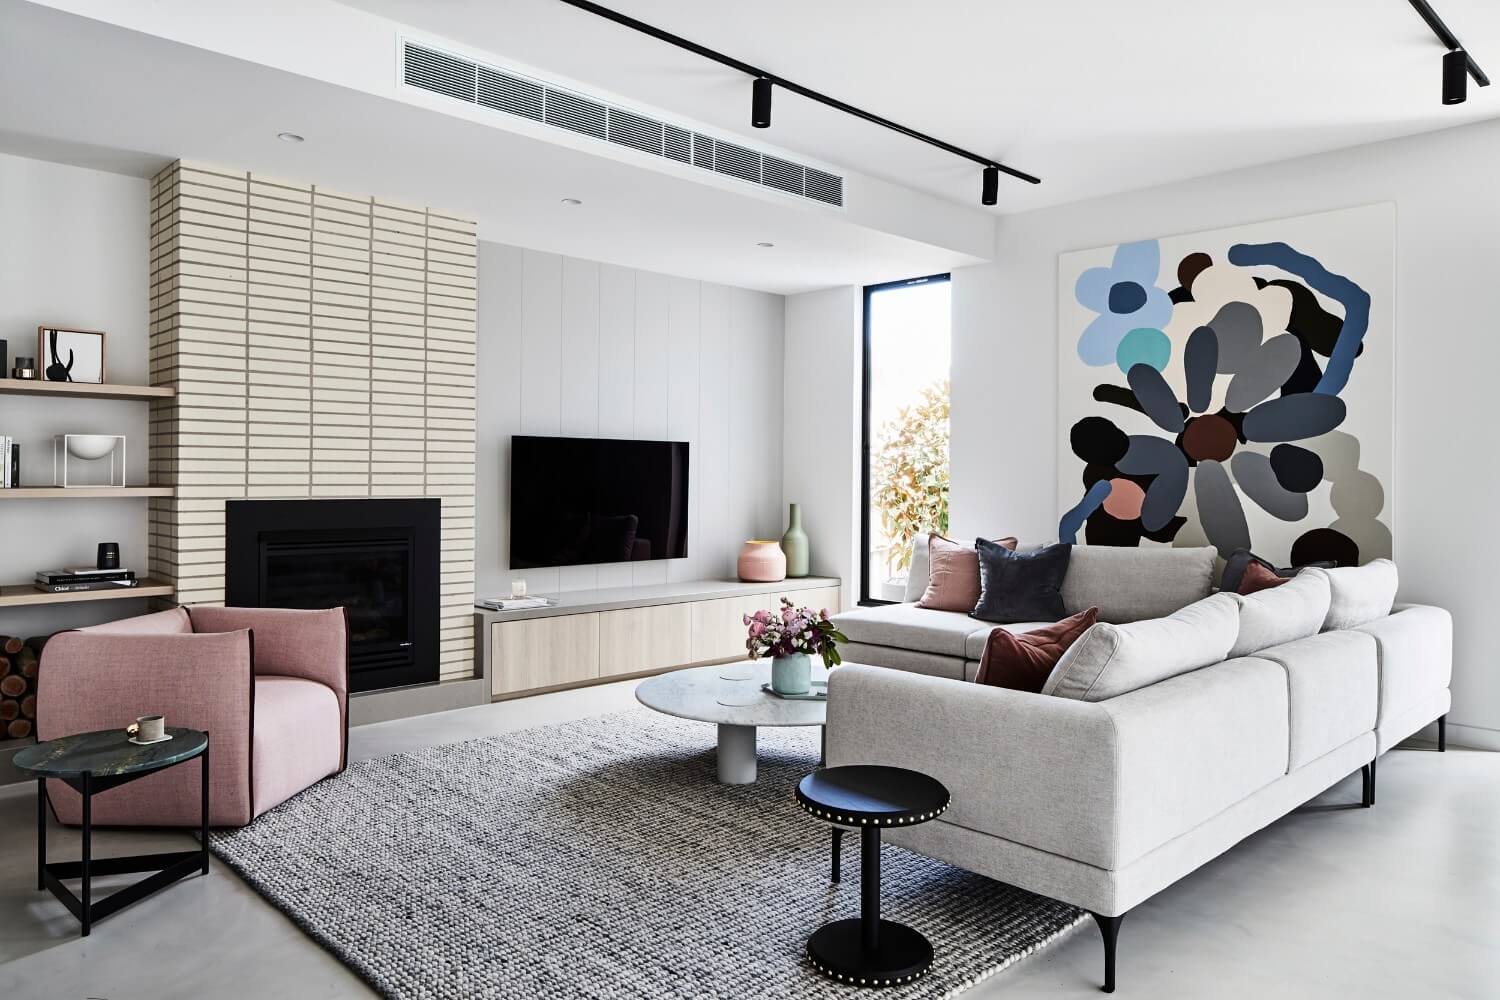 Looking for Living Room Style Ideas? Congratulations, You've Come to the Right Place | Hunker